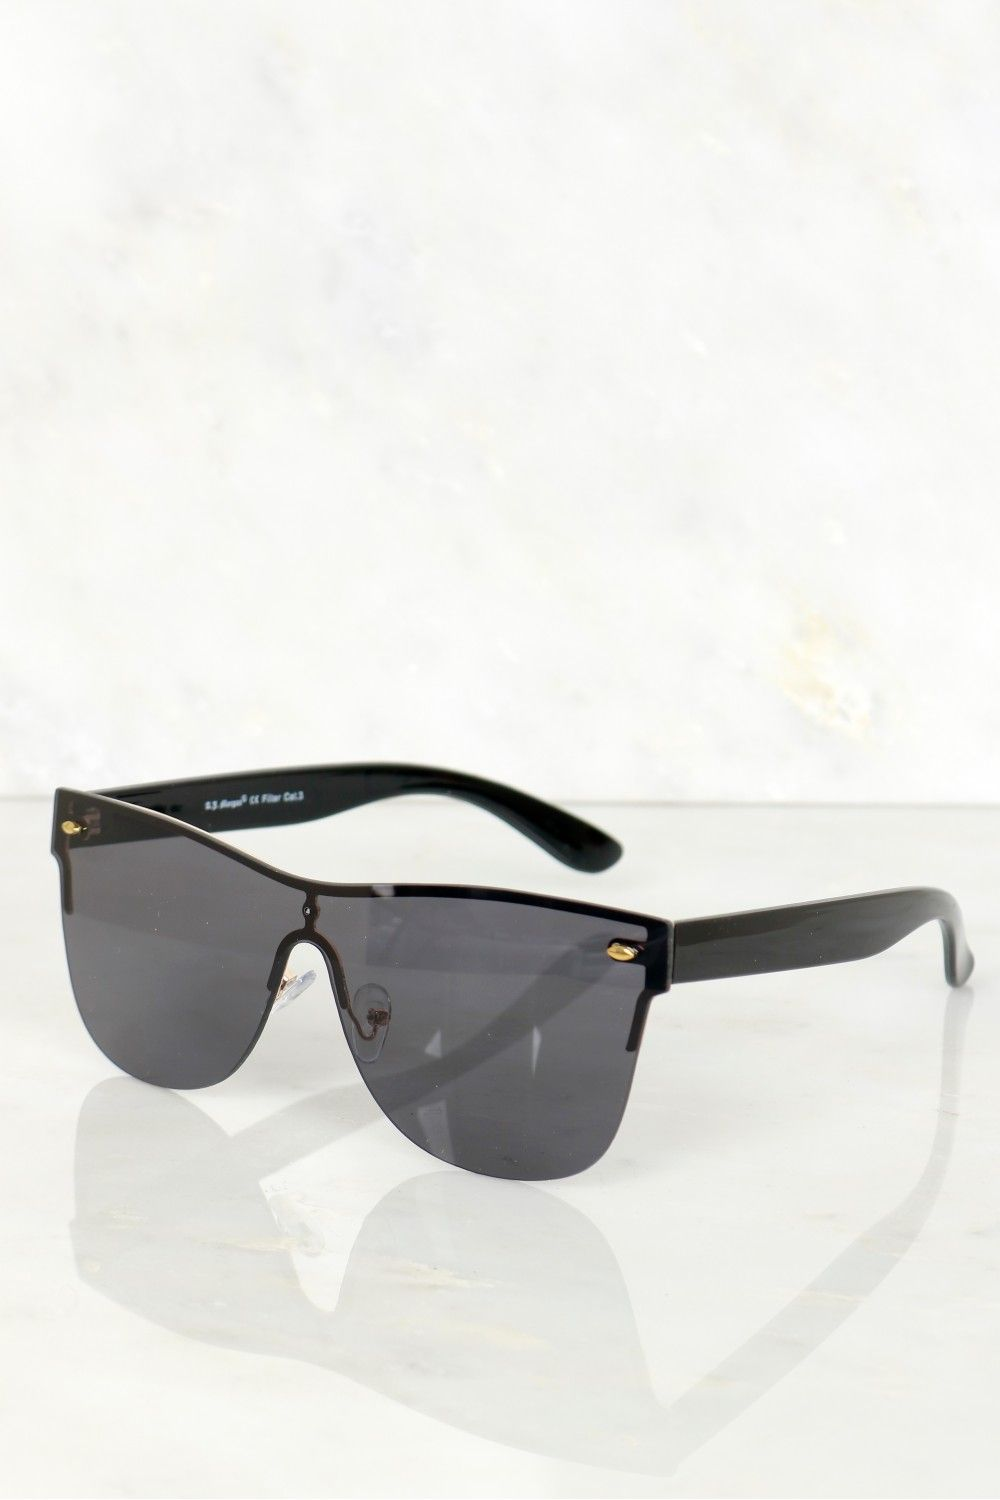 4cd3924da7 Mirrored Sunglasses Black